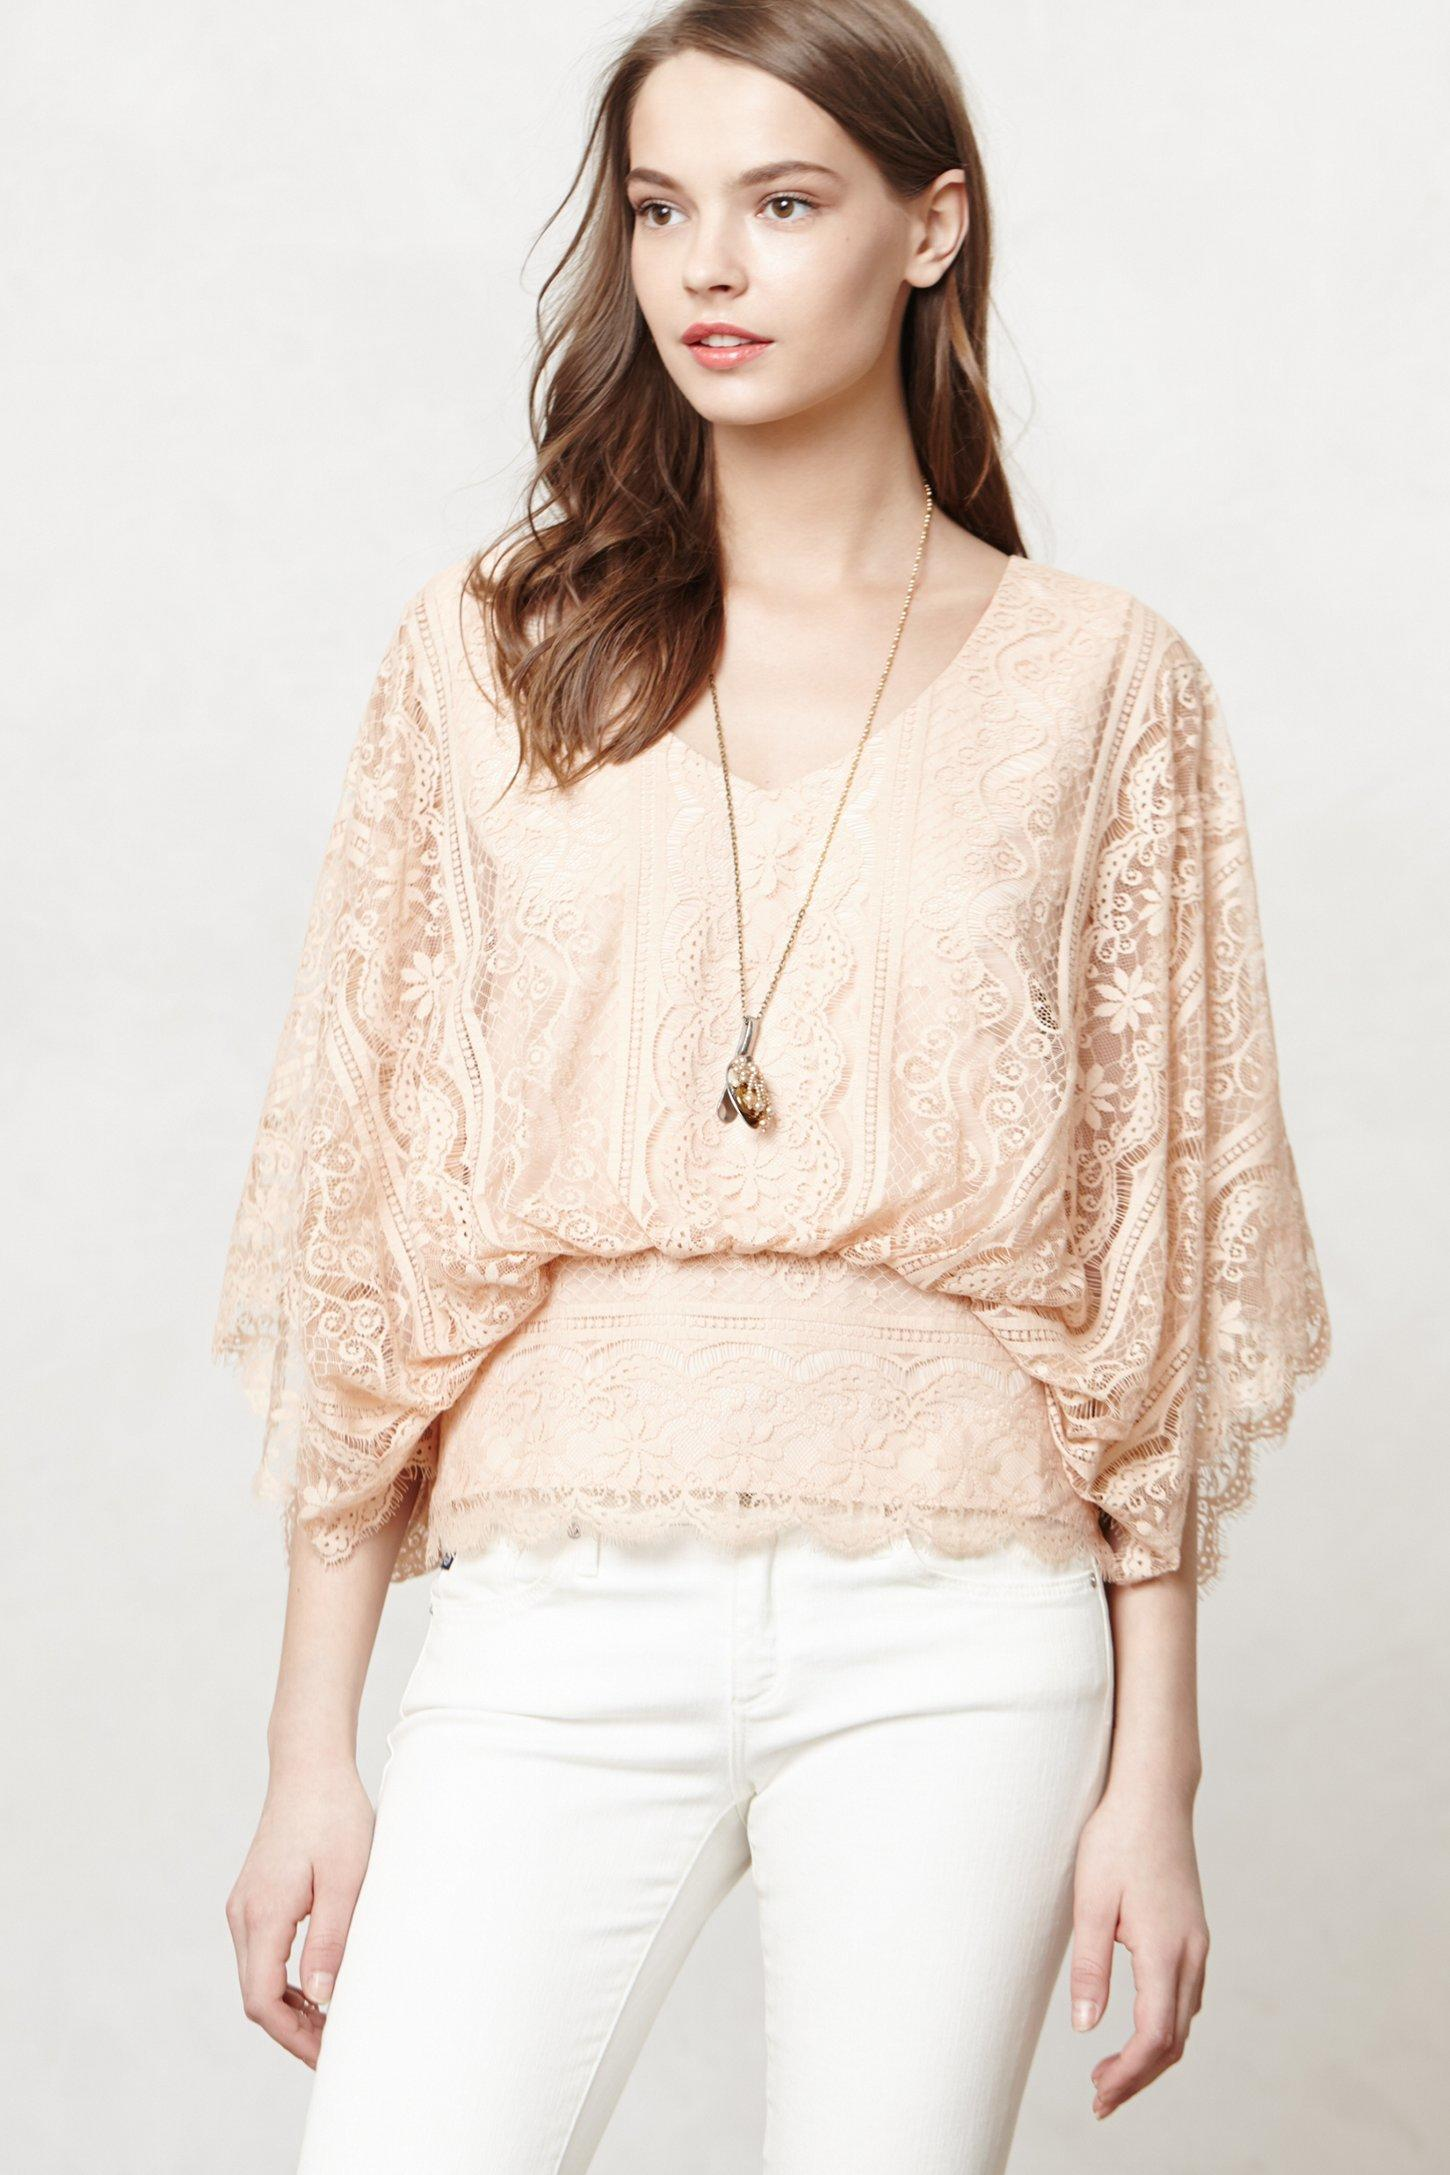 Anthropologie Blushed Lace Blouse 23